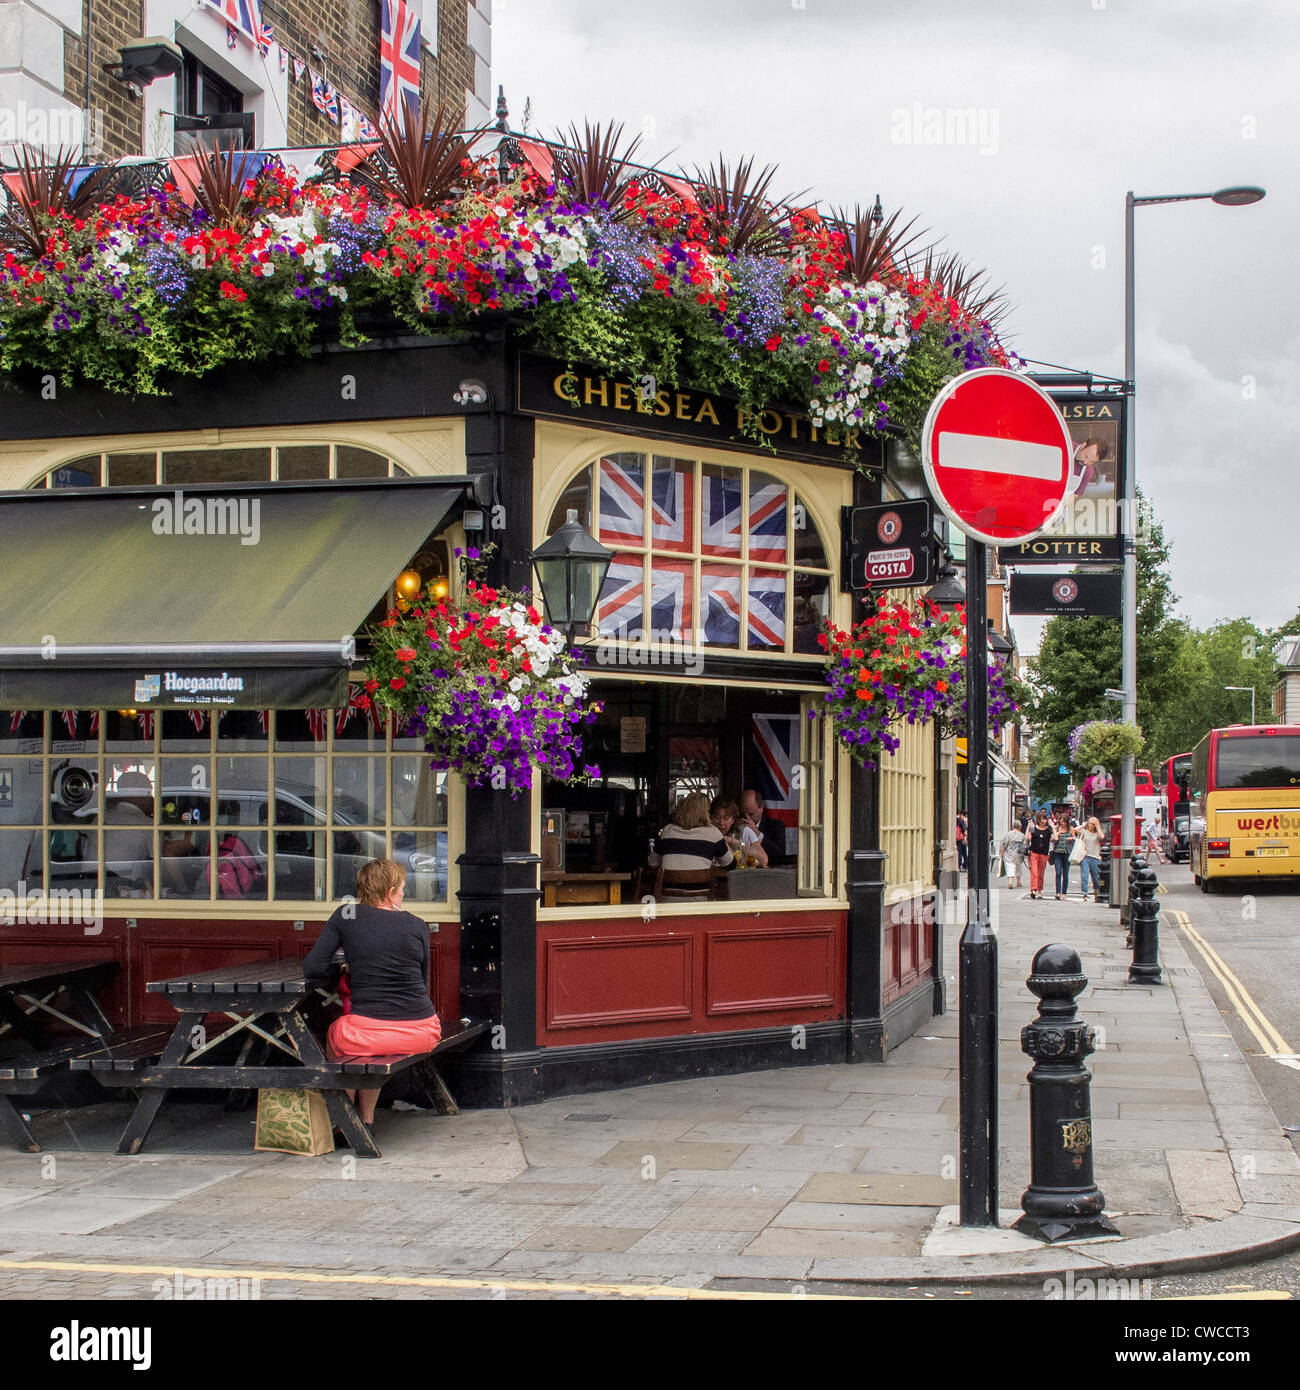 Colourful flags and floral displays decorate the Chelsea Potter pub at the time of the London 2012 Olympic games - Stock Image